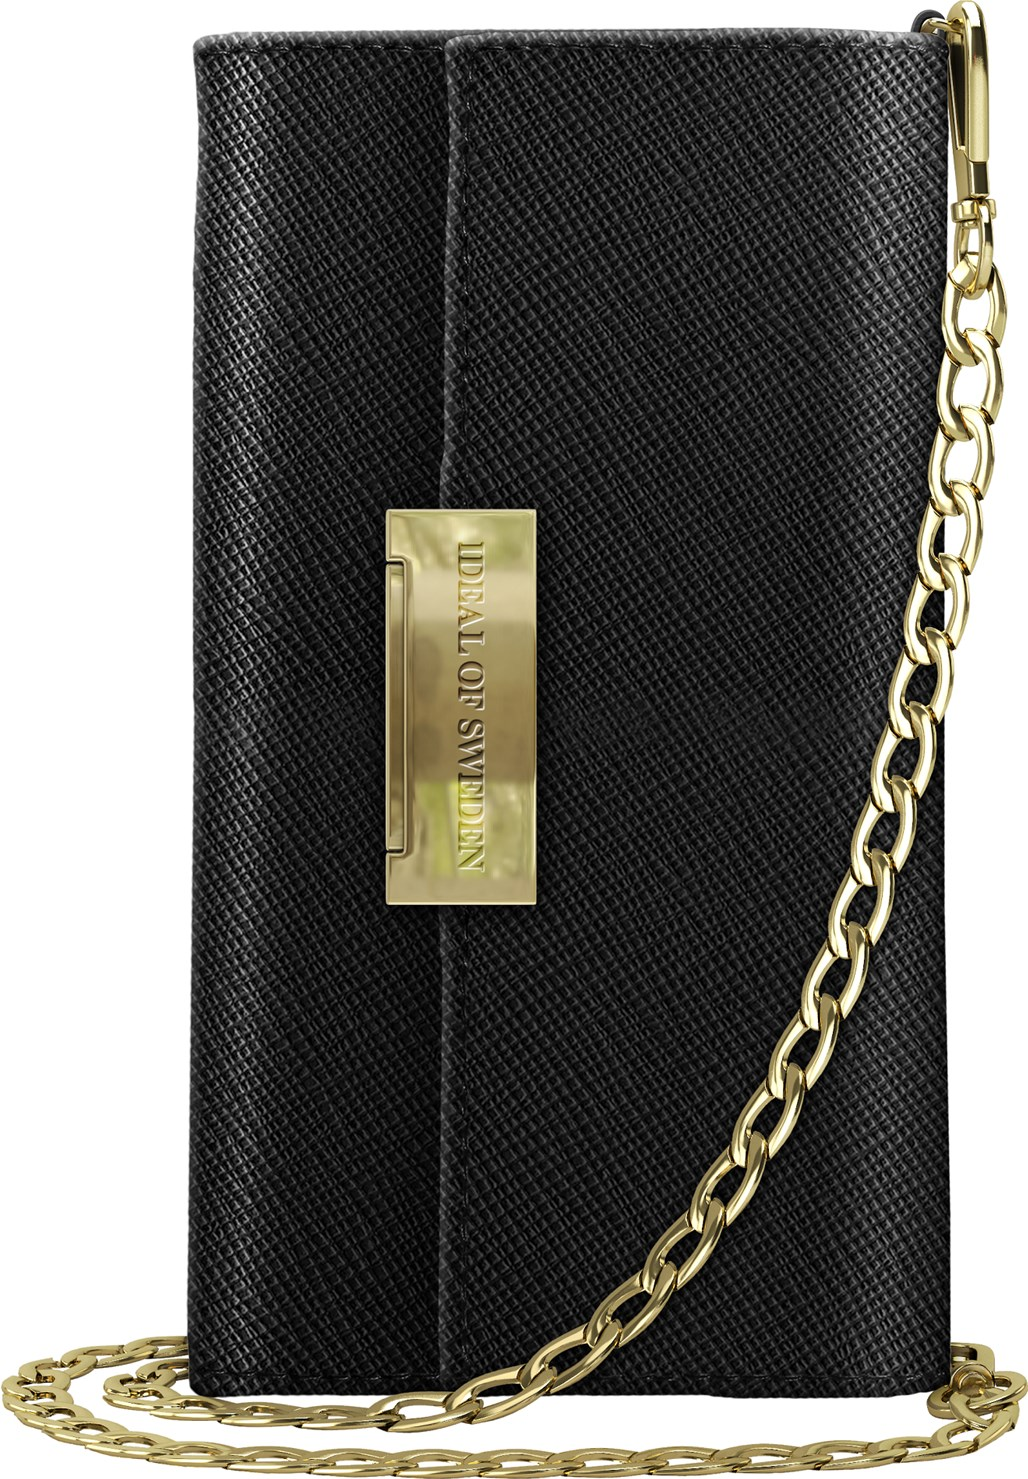 iDeal of Sweden Ideal Kensington Cross Body Clutch Iphone Xs Max Black